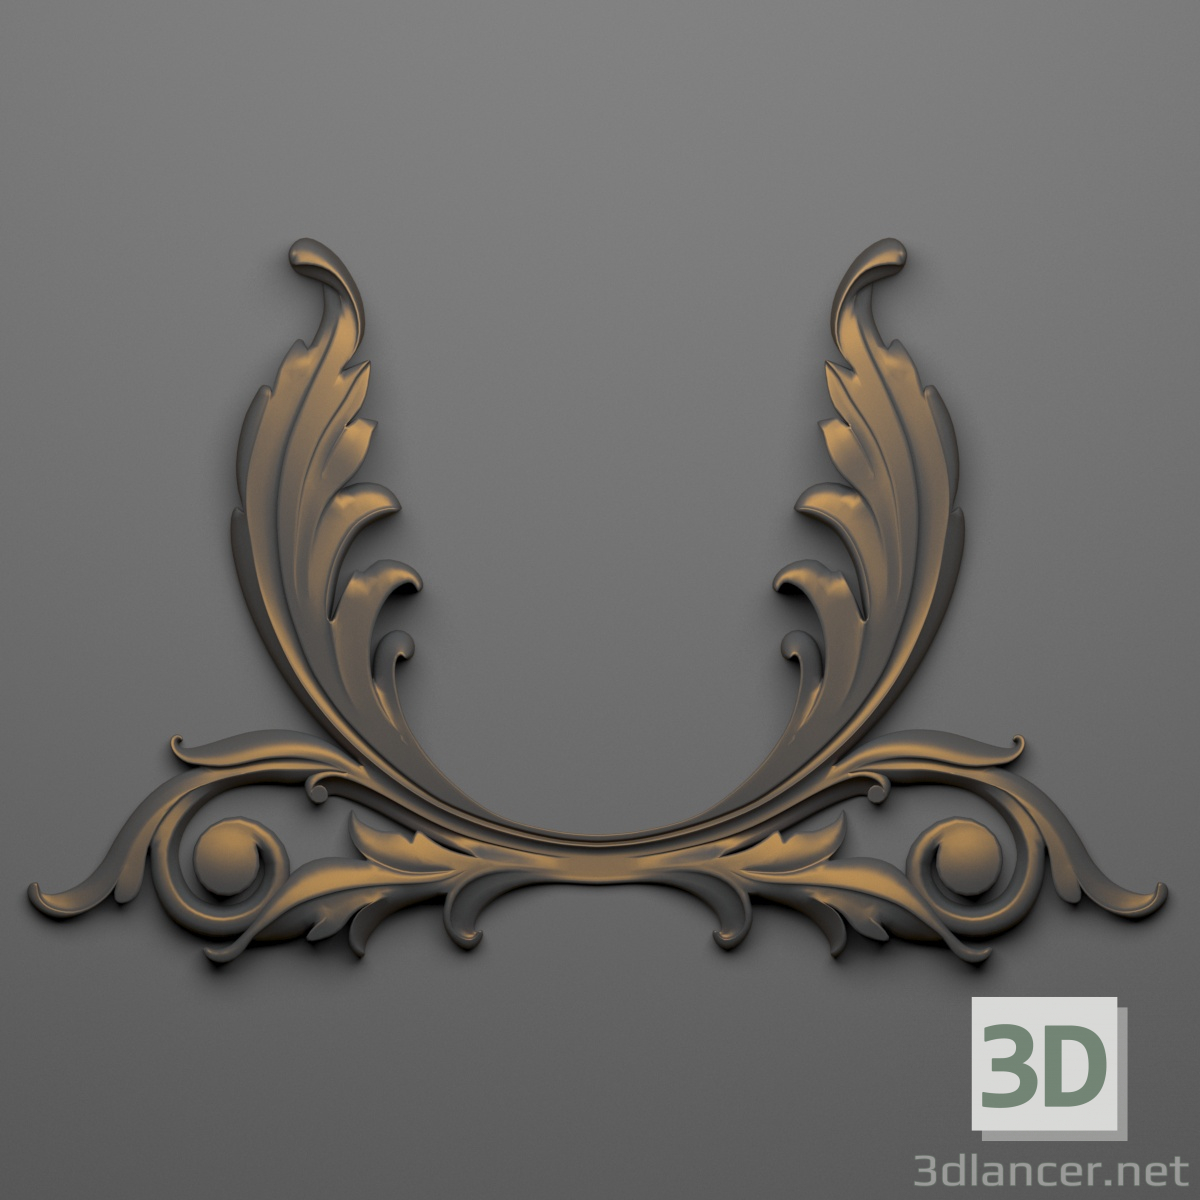 3d Decor 64 model buy - render